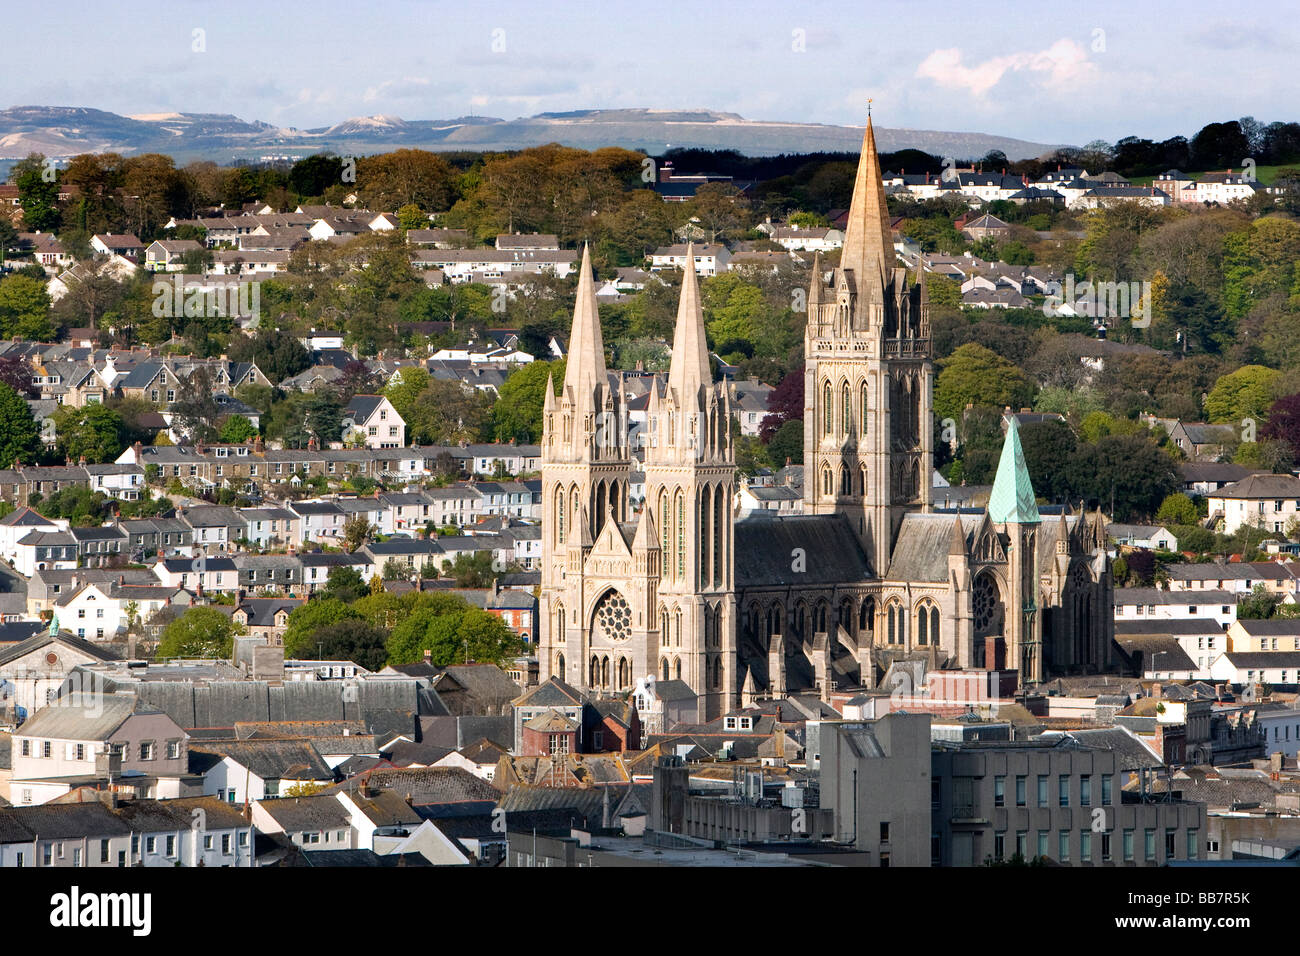 Truro cathedral, late afternoon, Truro, Cornwall, UK - Stock Image